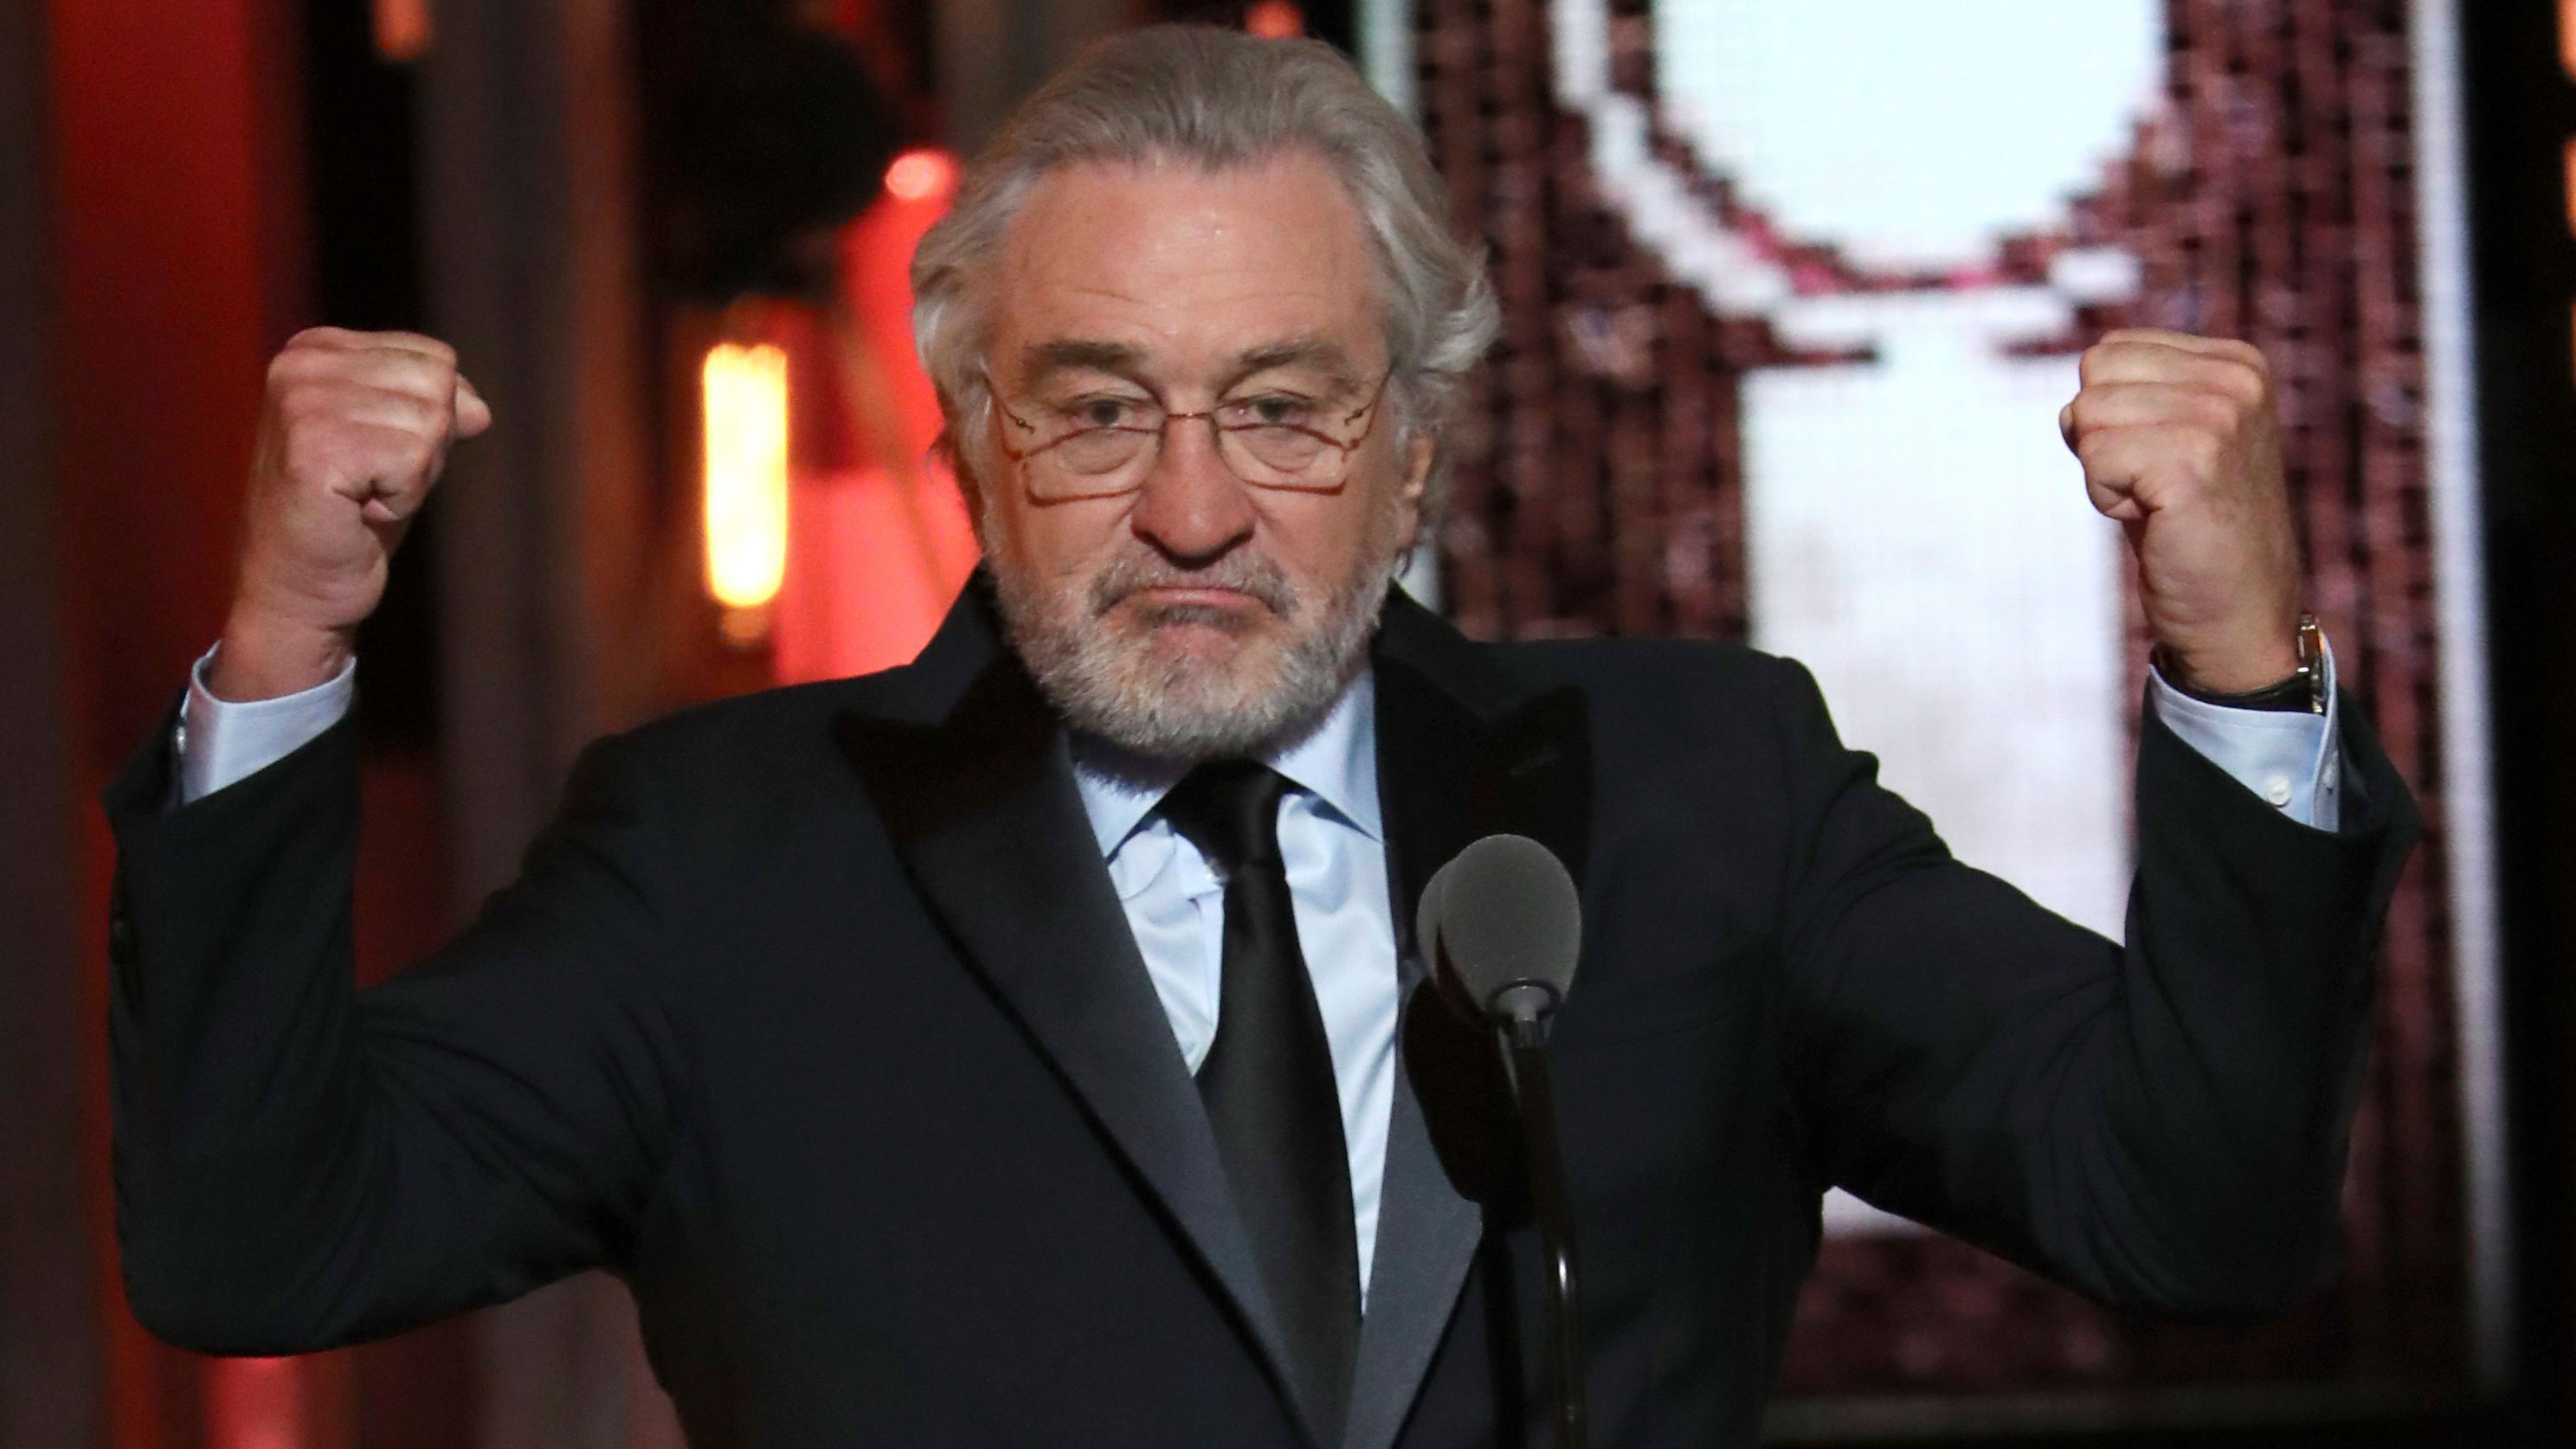 De Niro Apologizes to Canada for 'Idiotic Behavior' of Trump